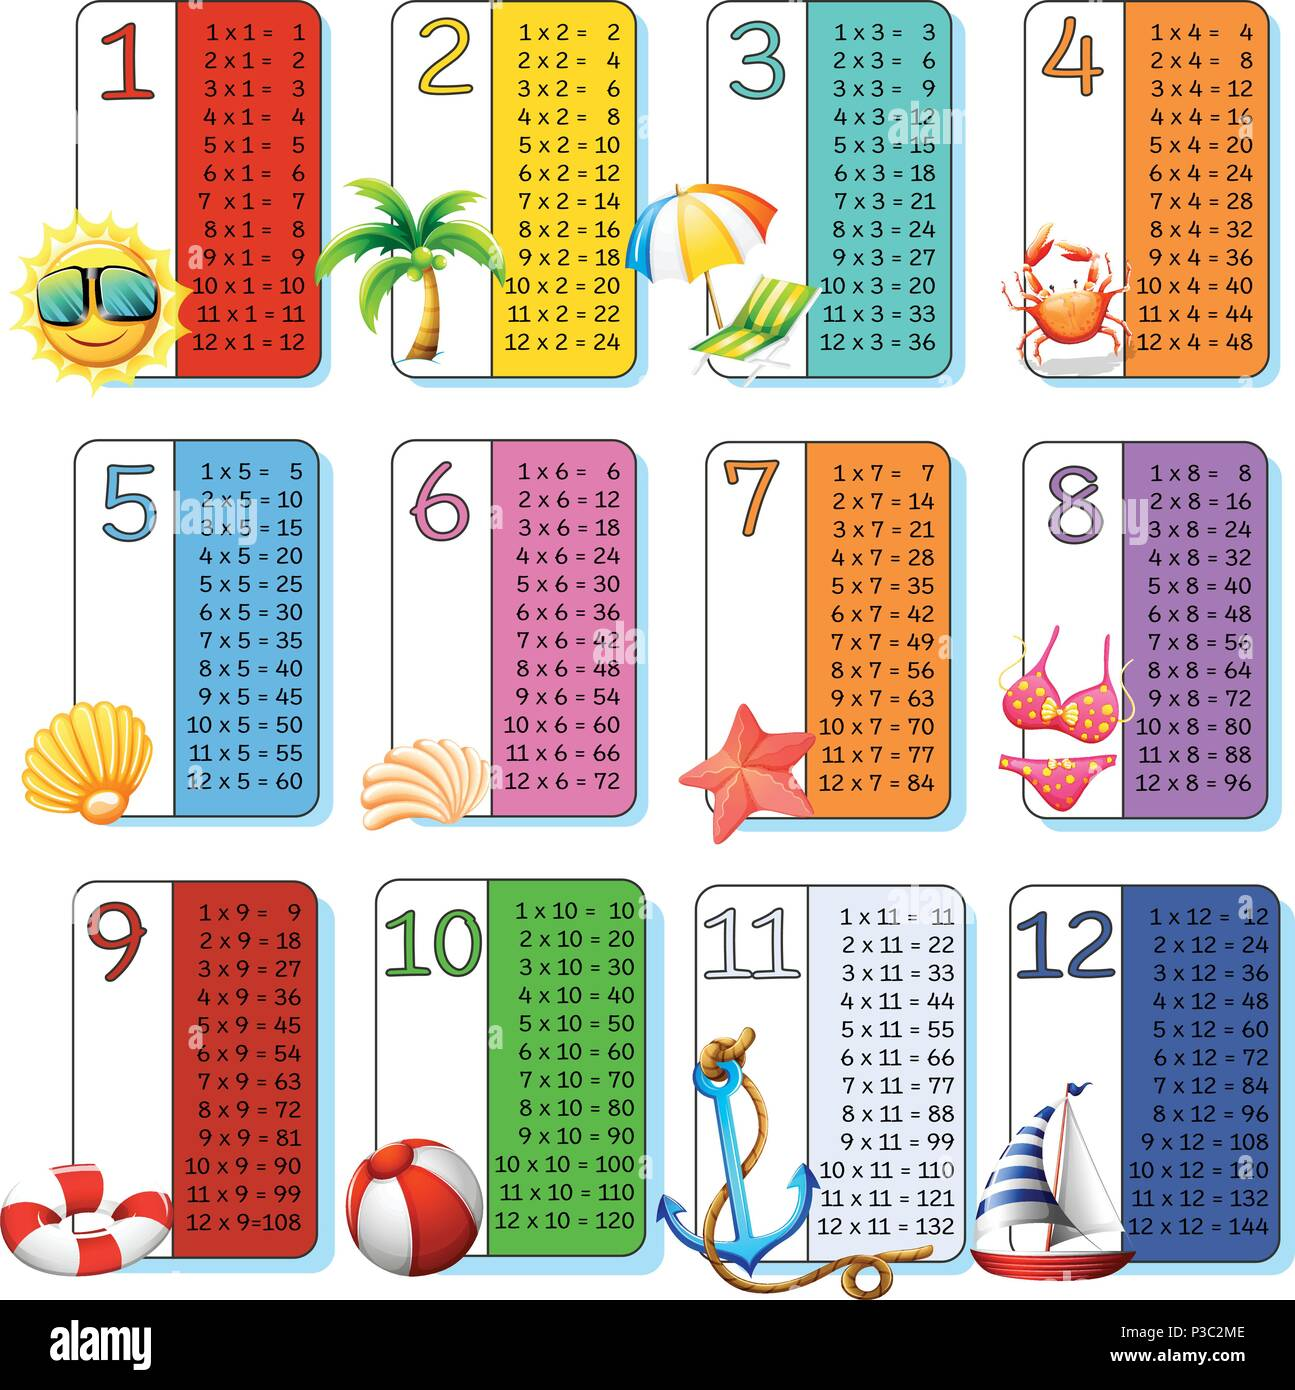 Multiplication Table Stock Vector Images